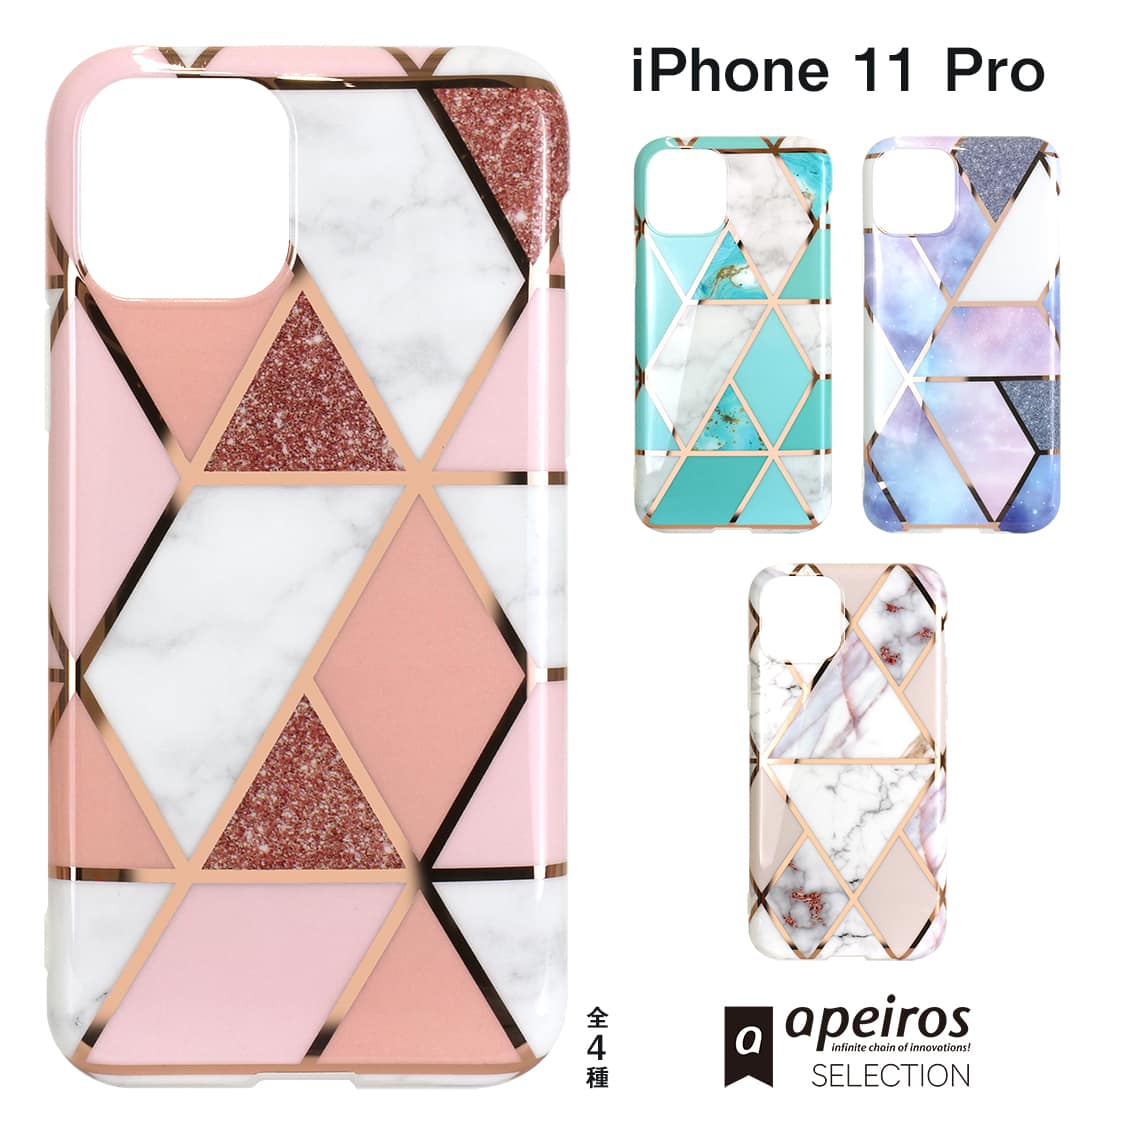 iPhone 11 Pro 大理石柄ケース [apeiros SELECTION]